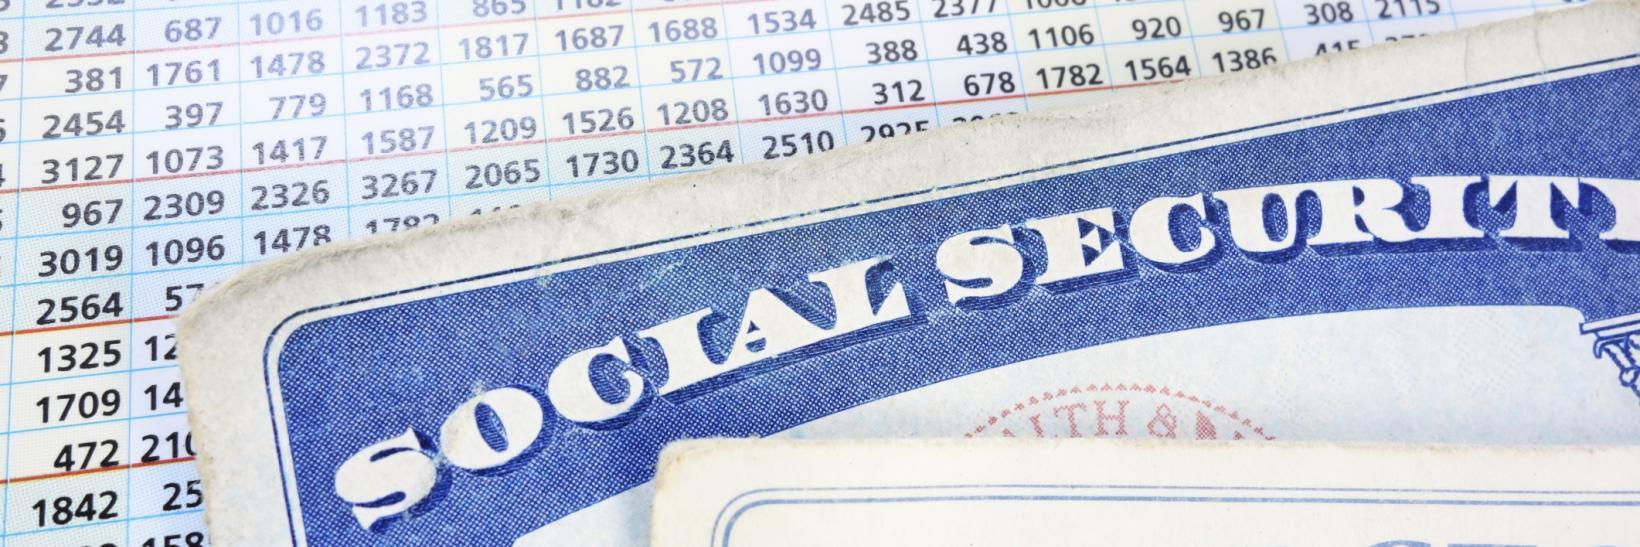 social security card and numbers